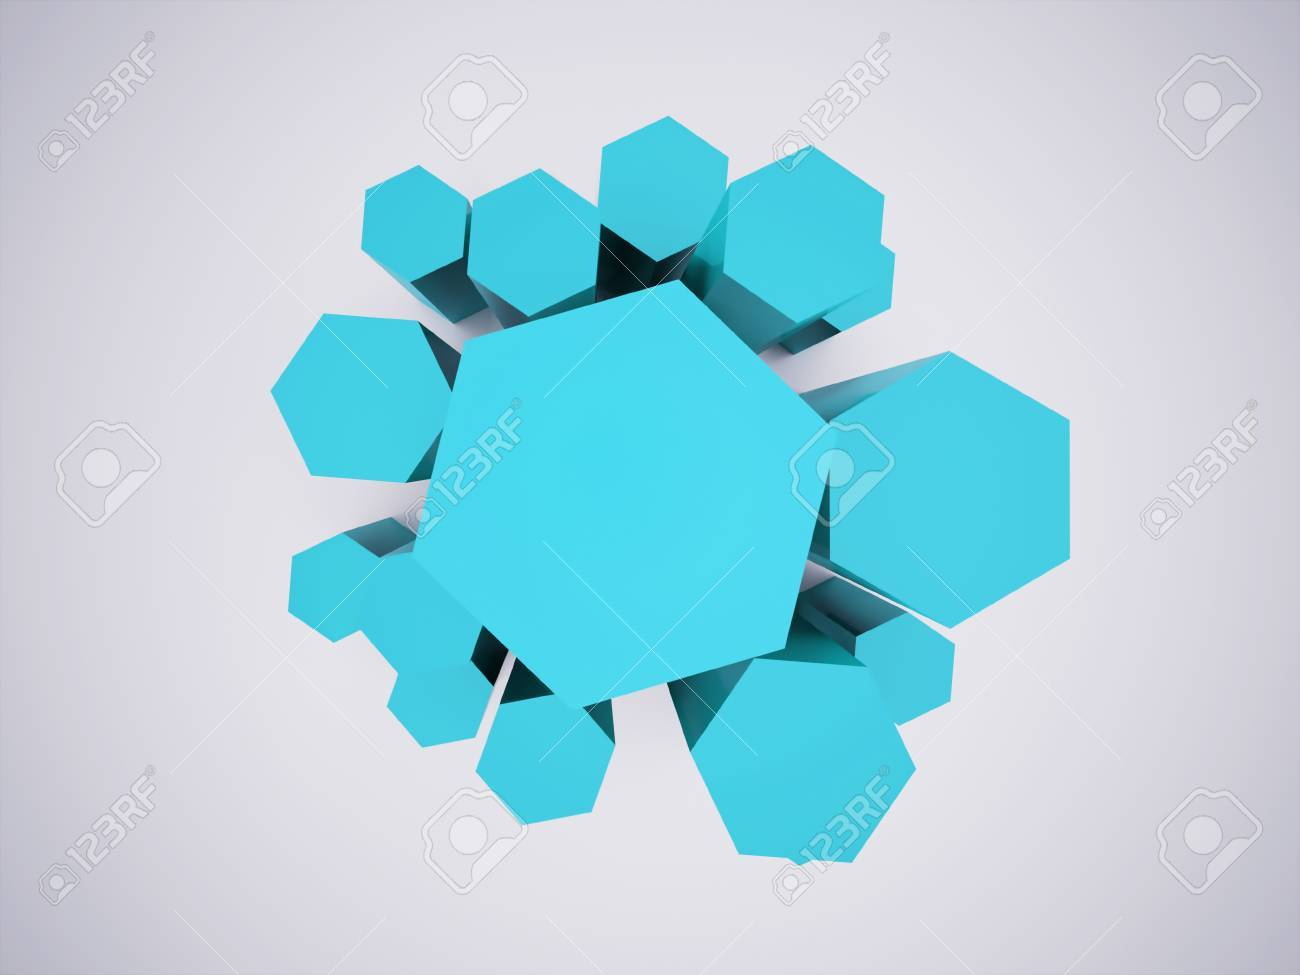 Blue hexagonal icon concept rendered Stock Photo - 25708667